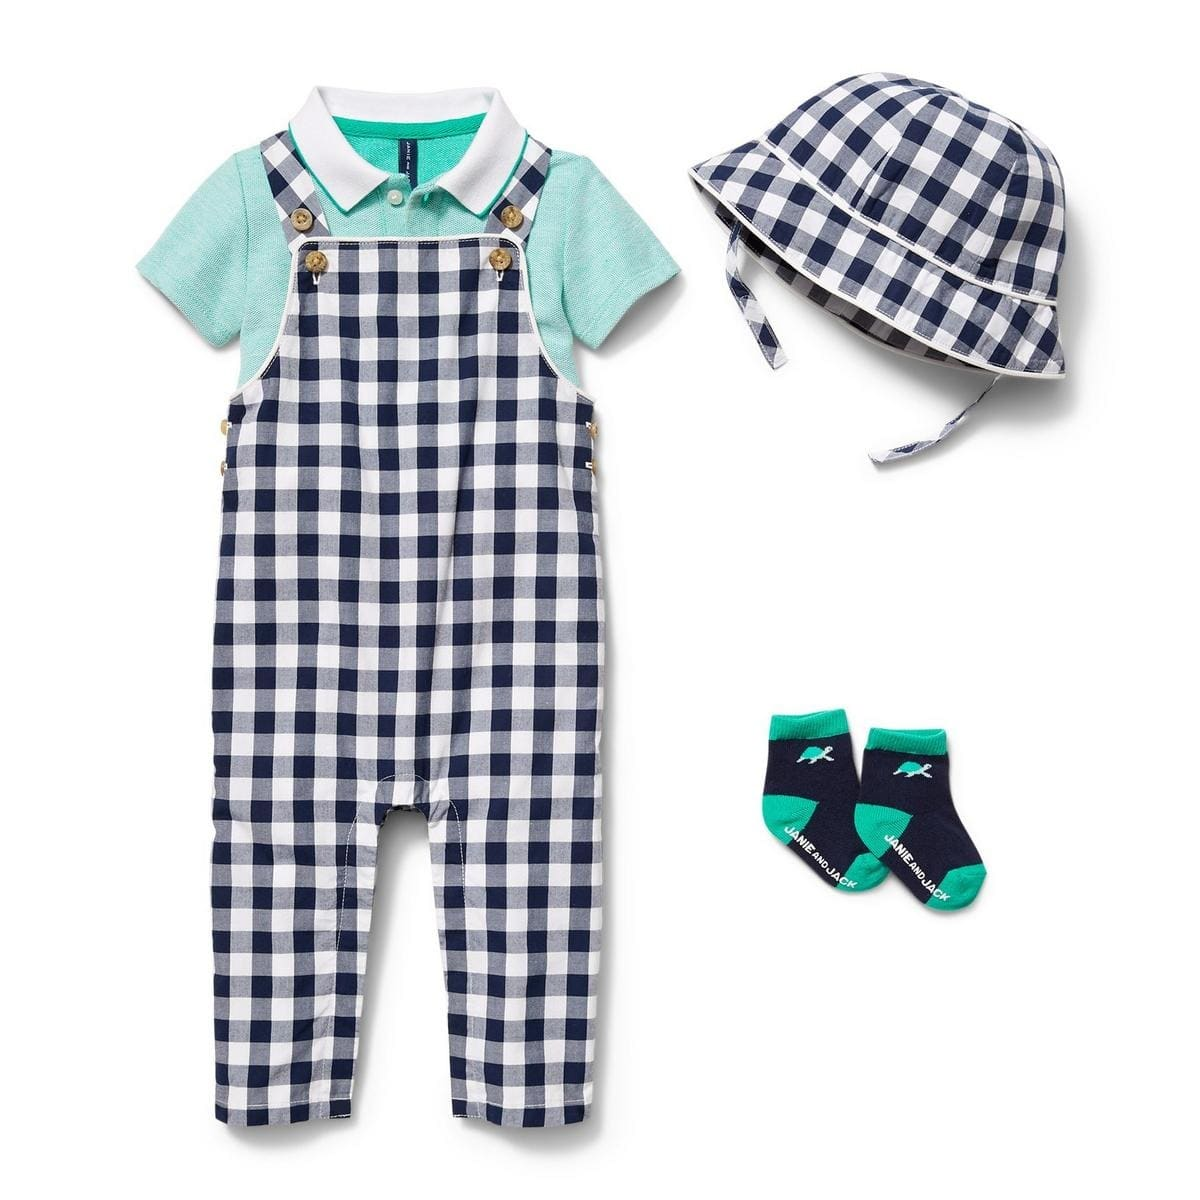 Janie & Jack: Up to 70% Off + FS (Ends 9/3): Baby Gingham Hat $5.60, Boys' Linen Shirts $8.80 & More